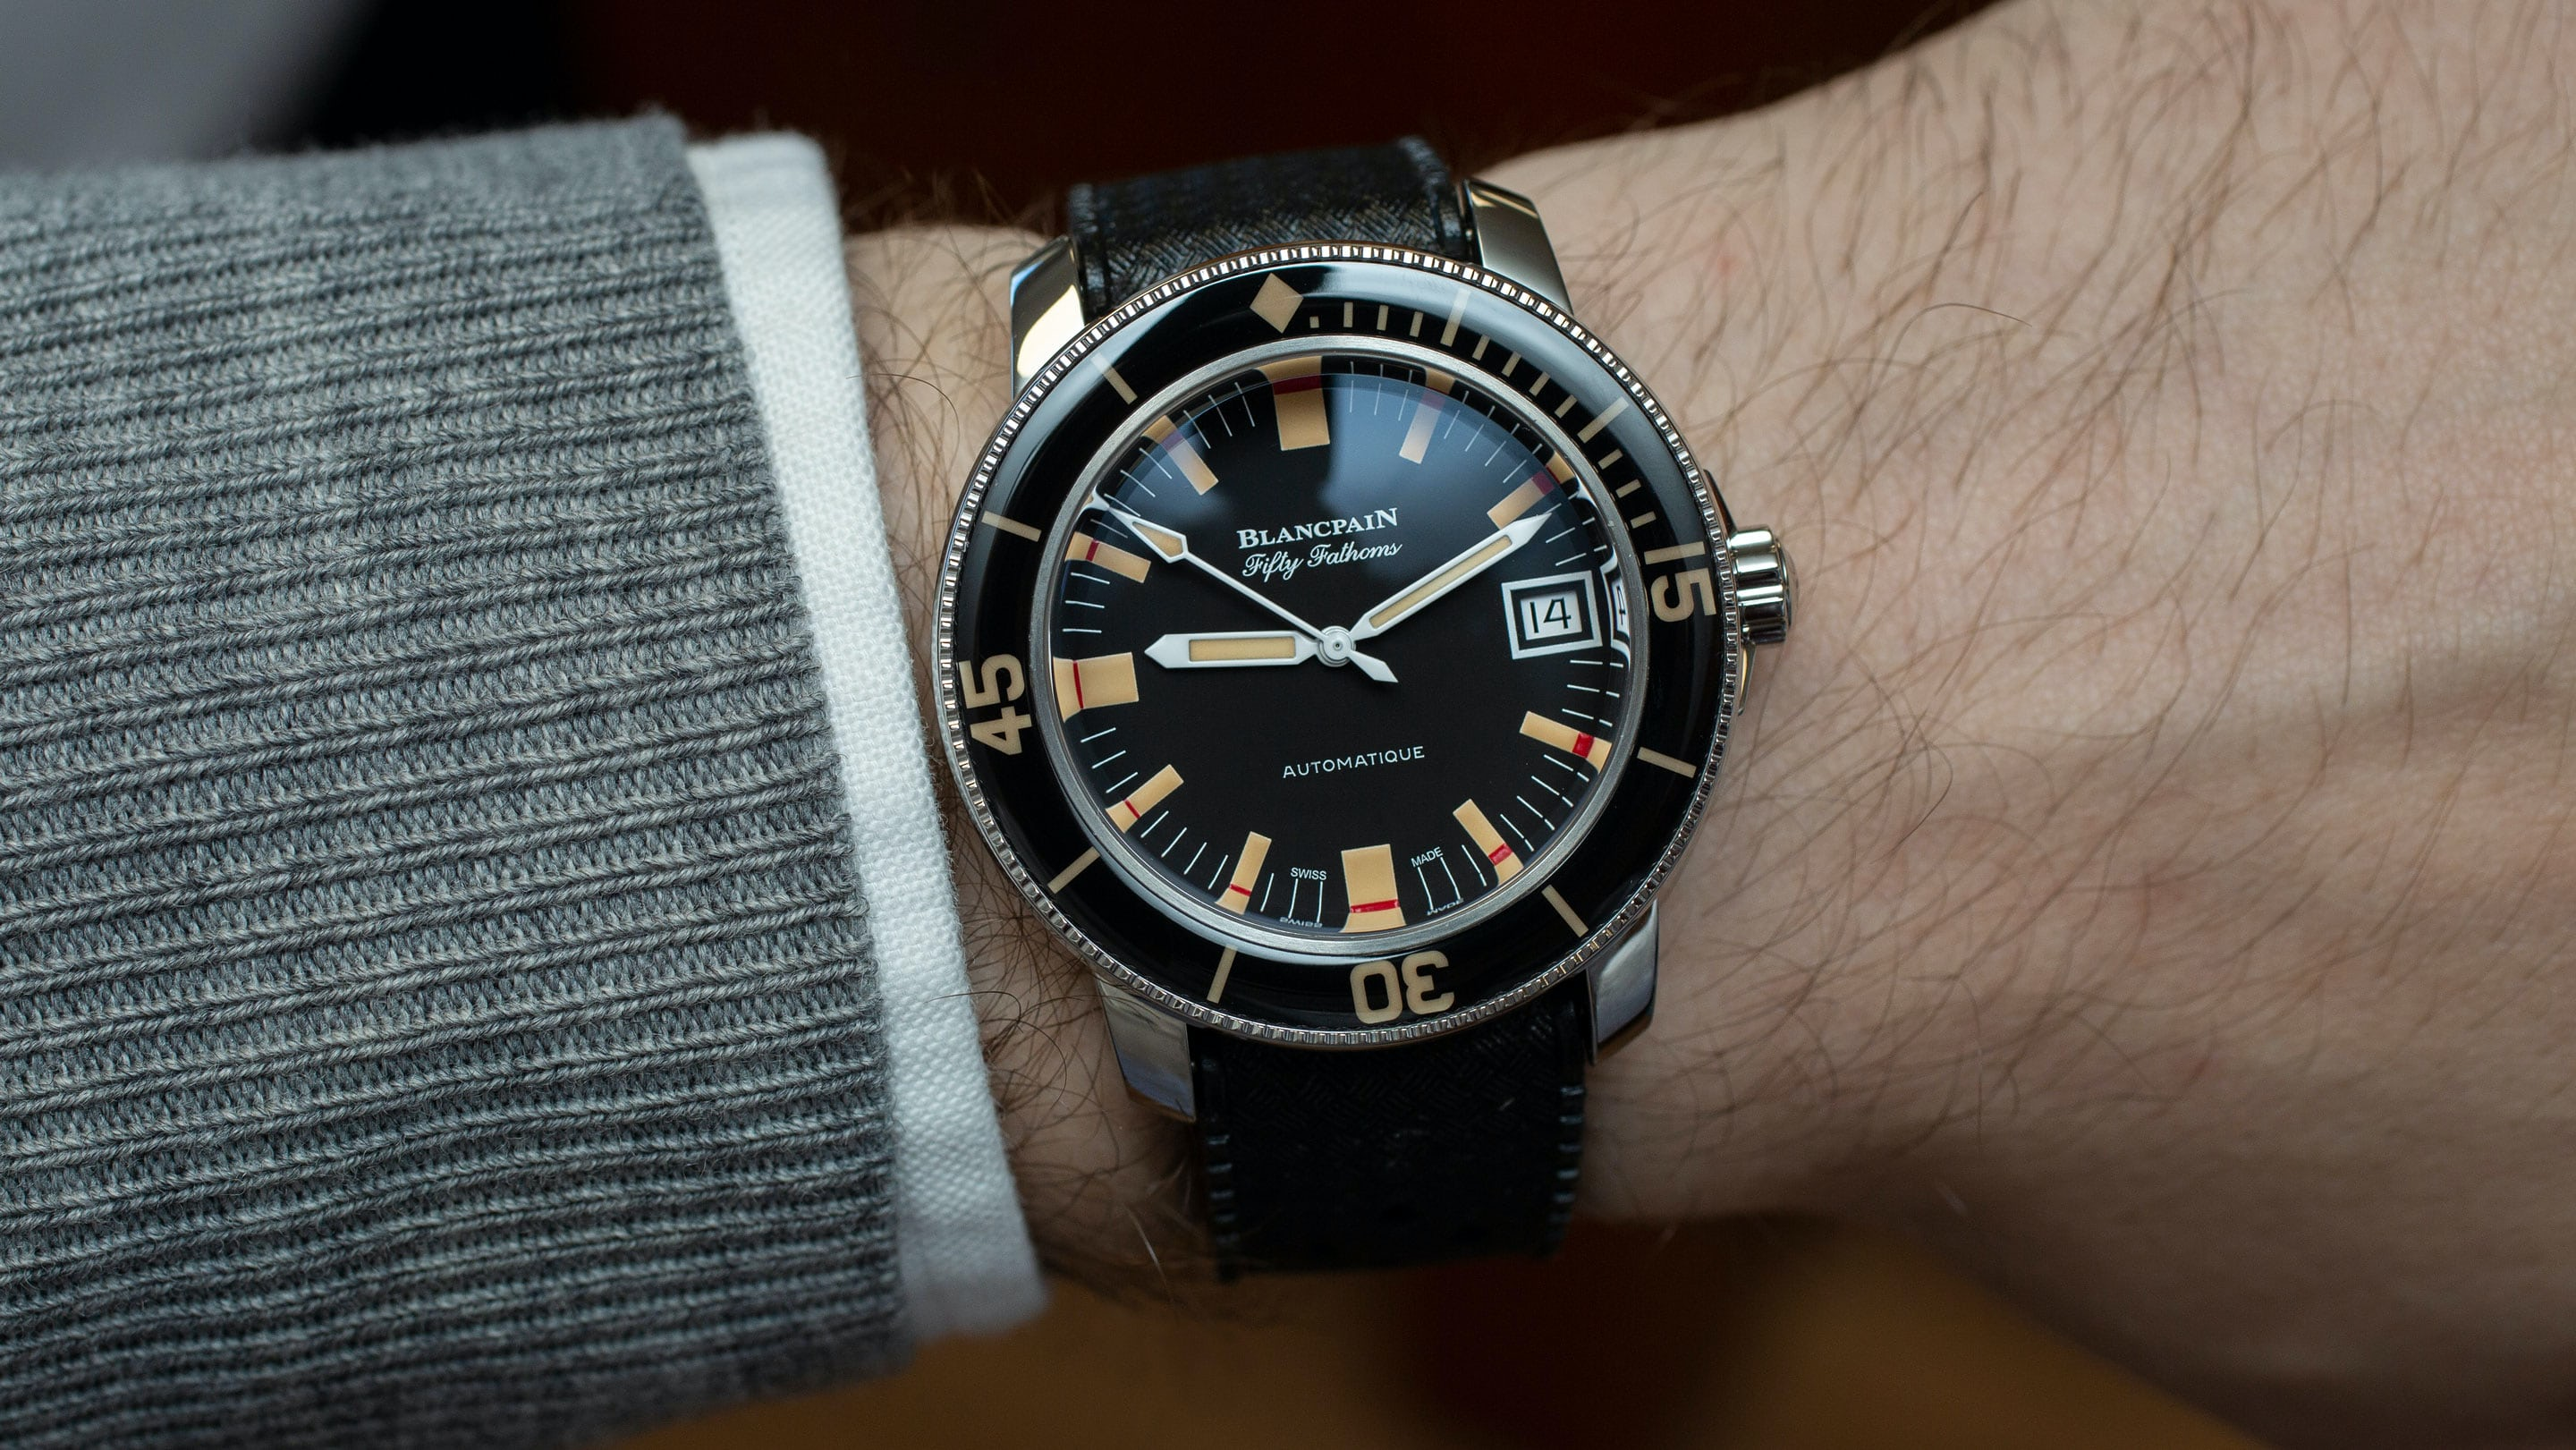 Introducing The Blancpain Fifty Fathoms Barakuda Limited Edition